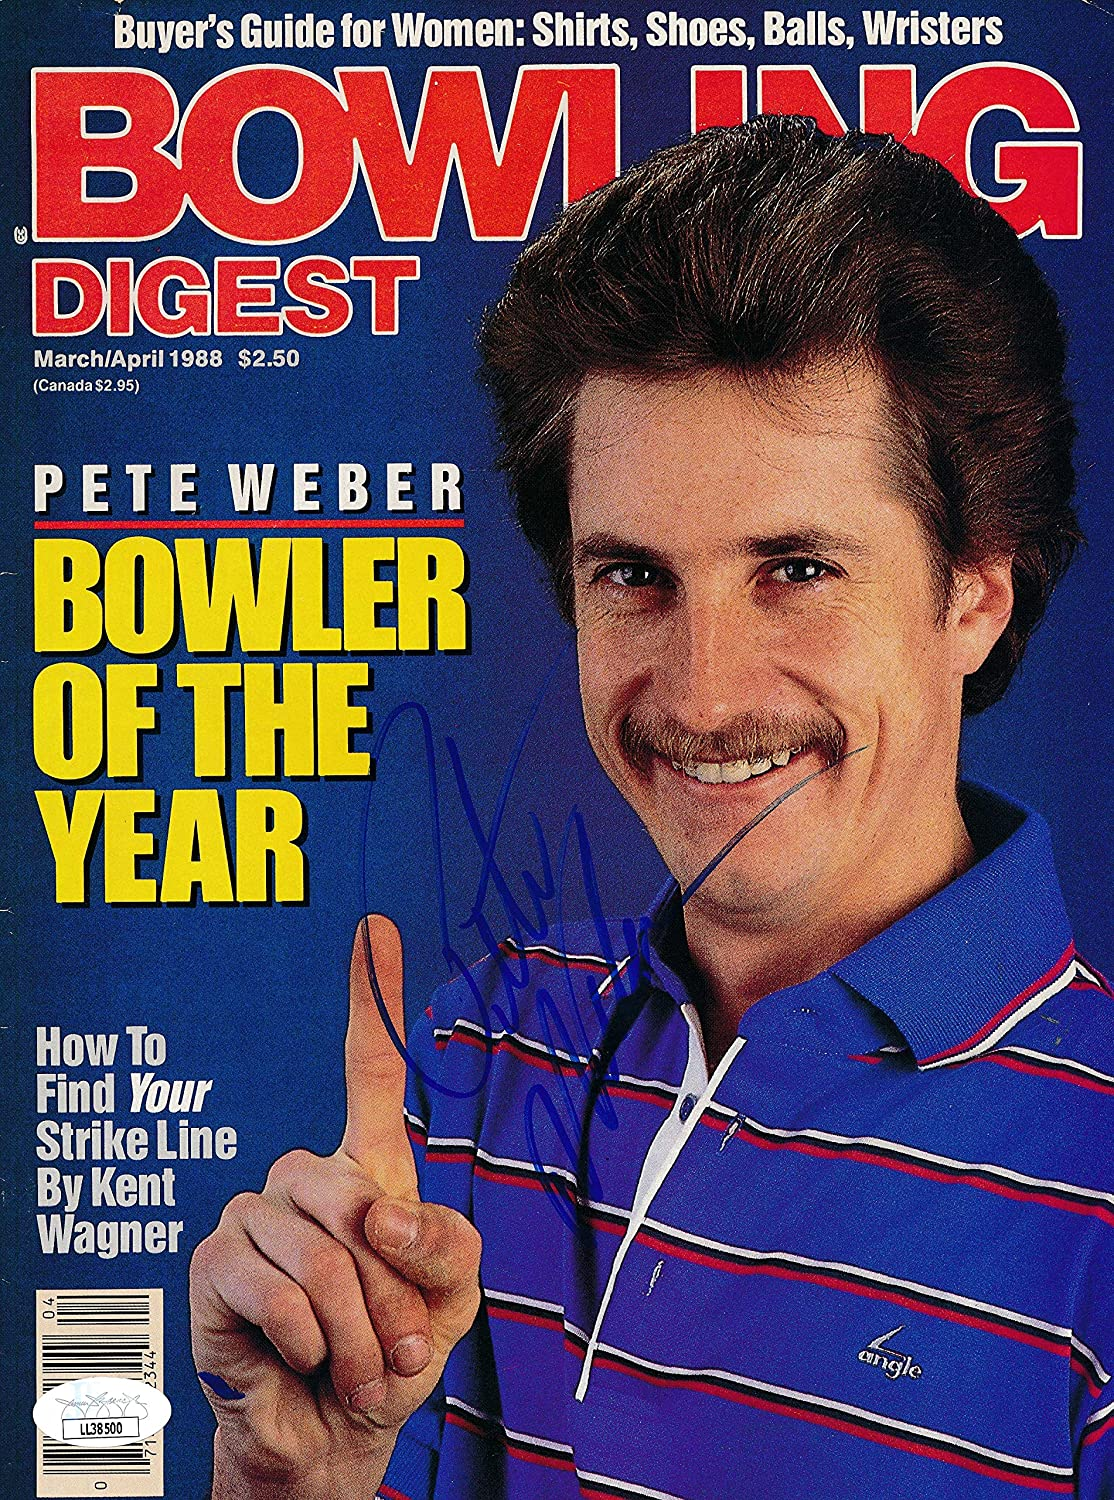 Pete Weber Bowler Signed Autographed J Bowling Tulsa Mall 1988 Cover Online limited product Digest